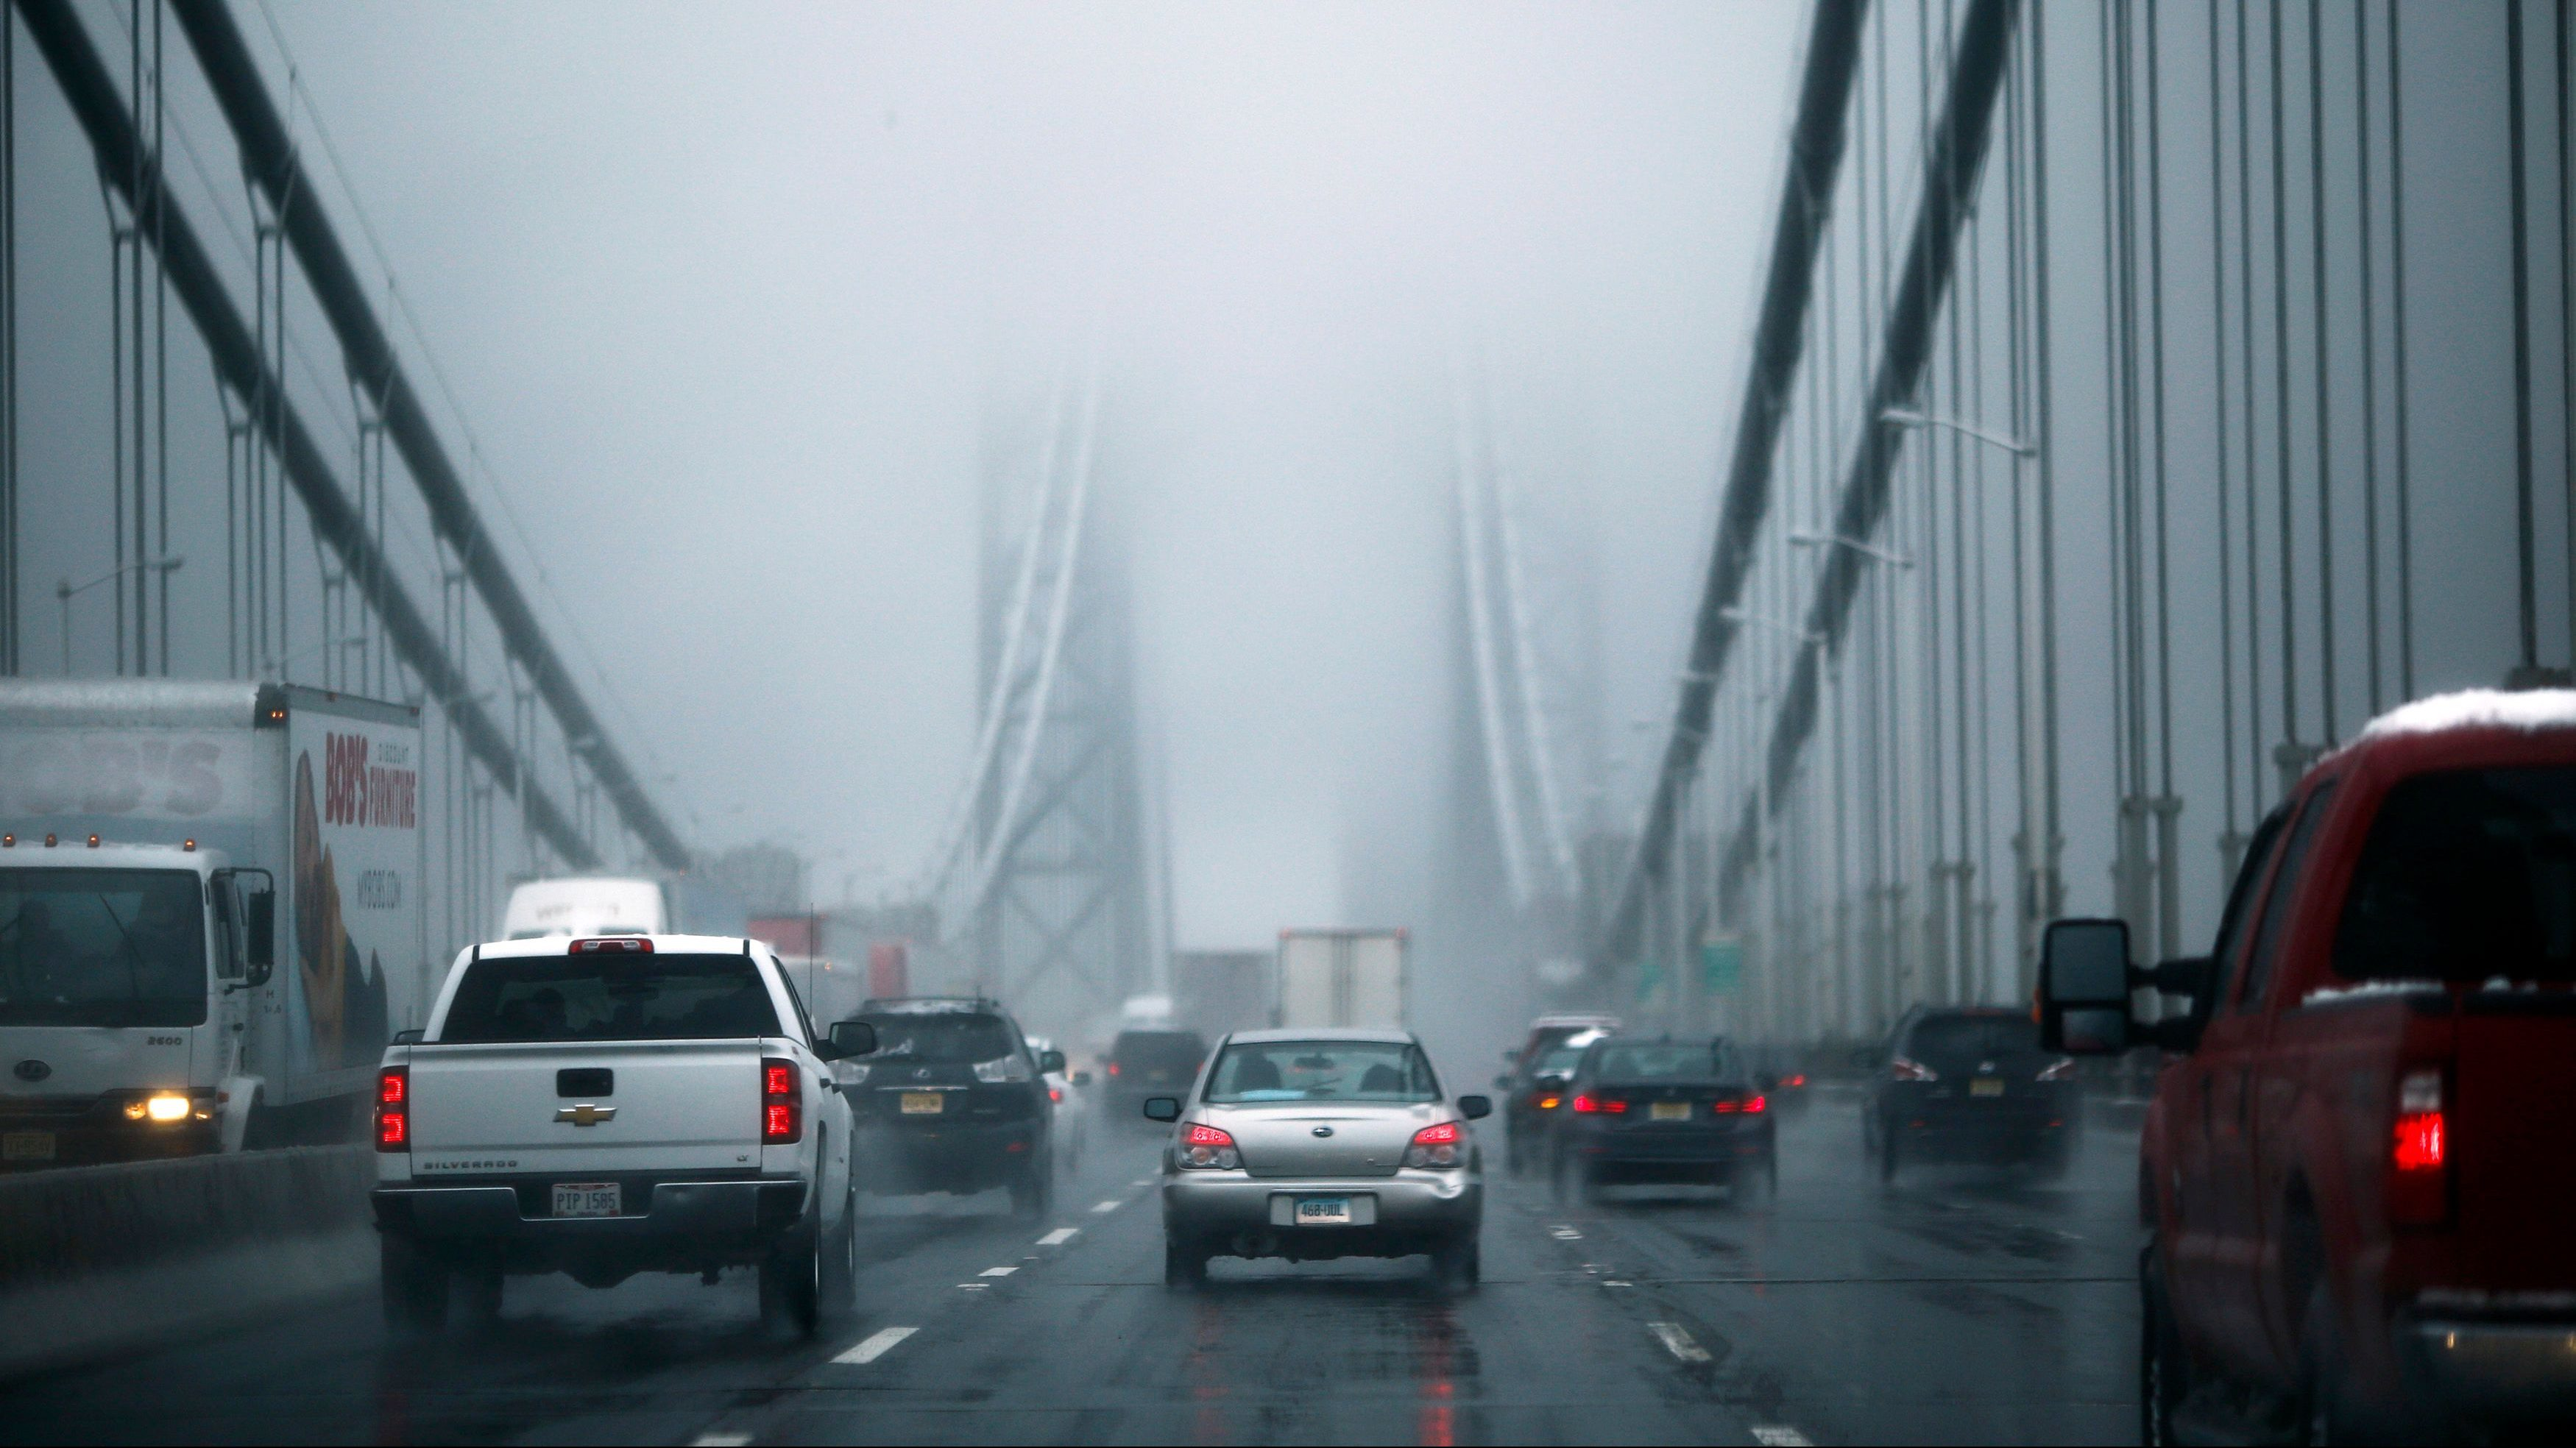 Cars make their way through the Washington bridge in New York